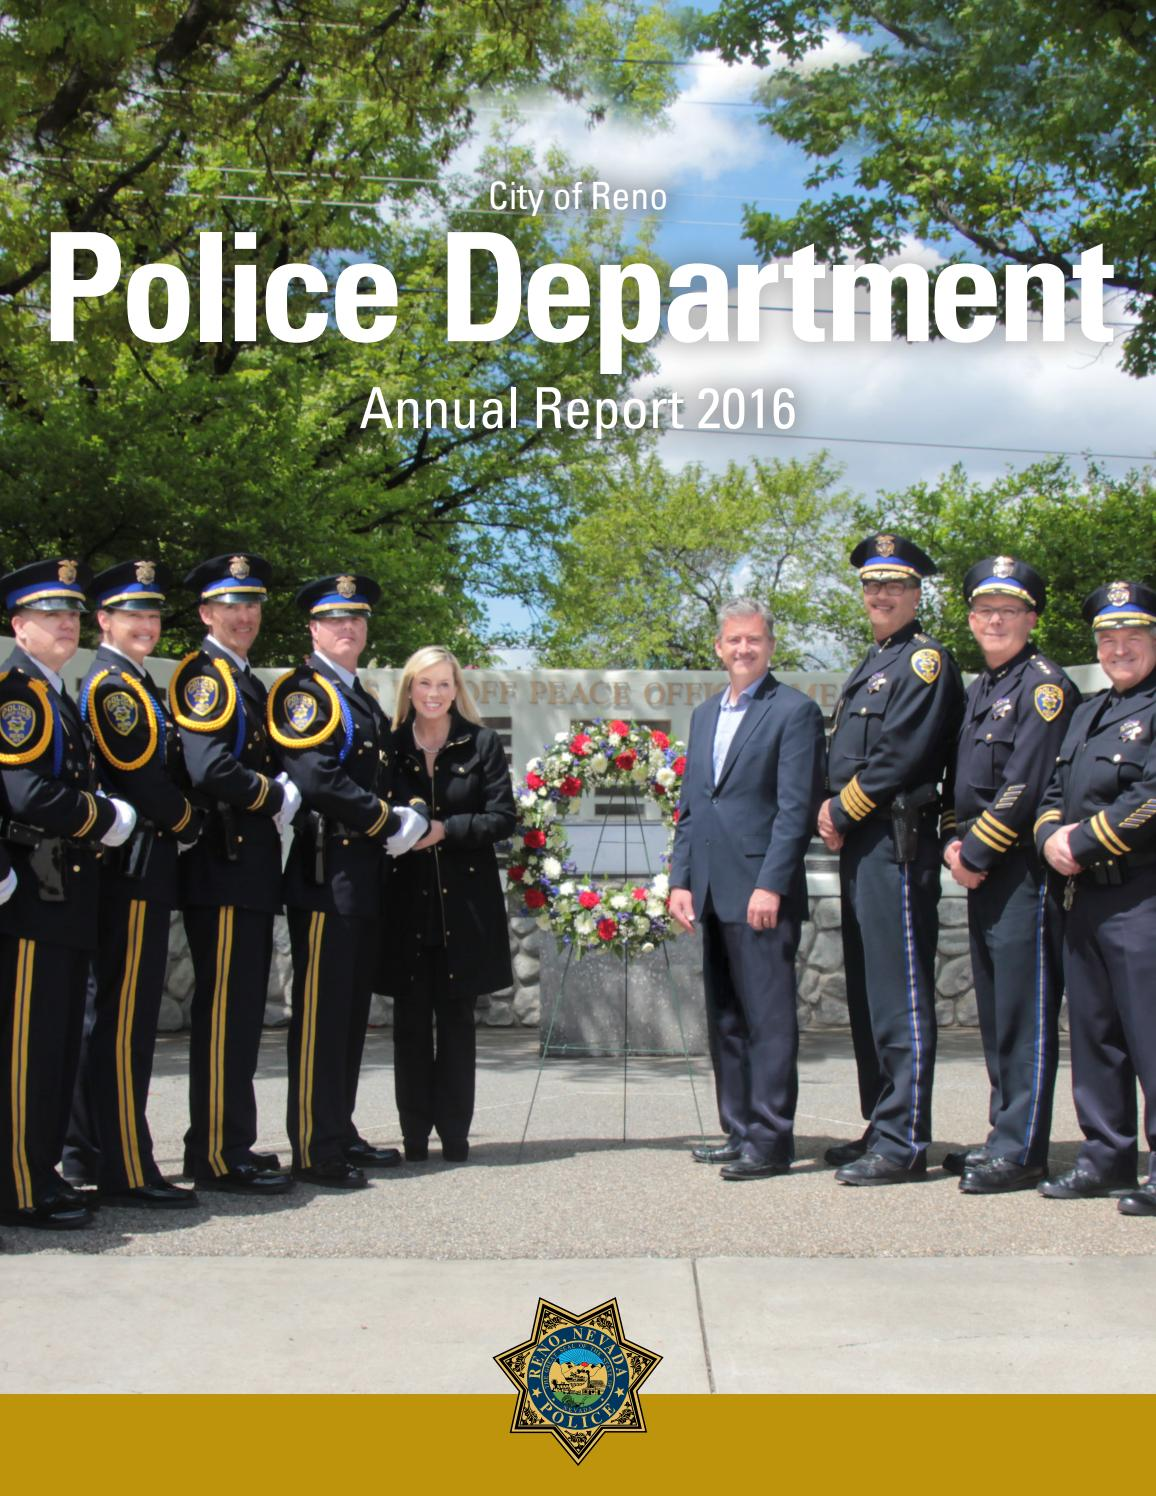 Castle Rock Police 2015 Annual Report By Becky Hernandez Issuu Department Wiring Diagram 2016 Reno